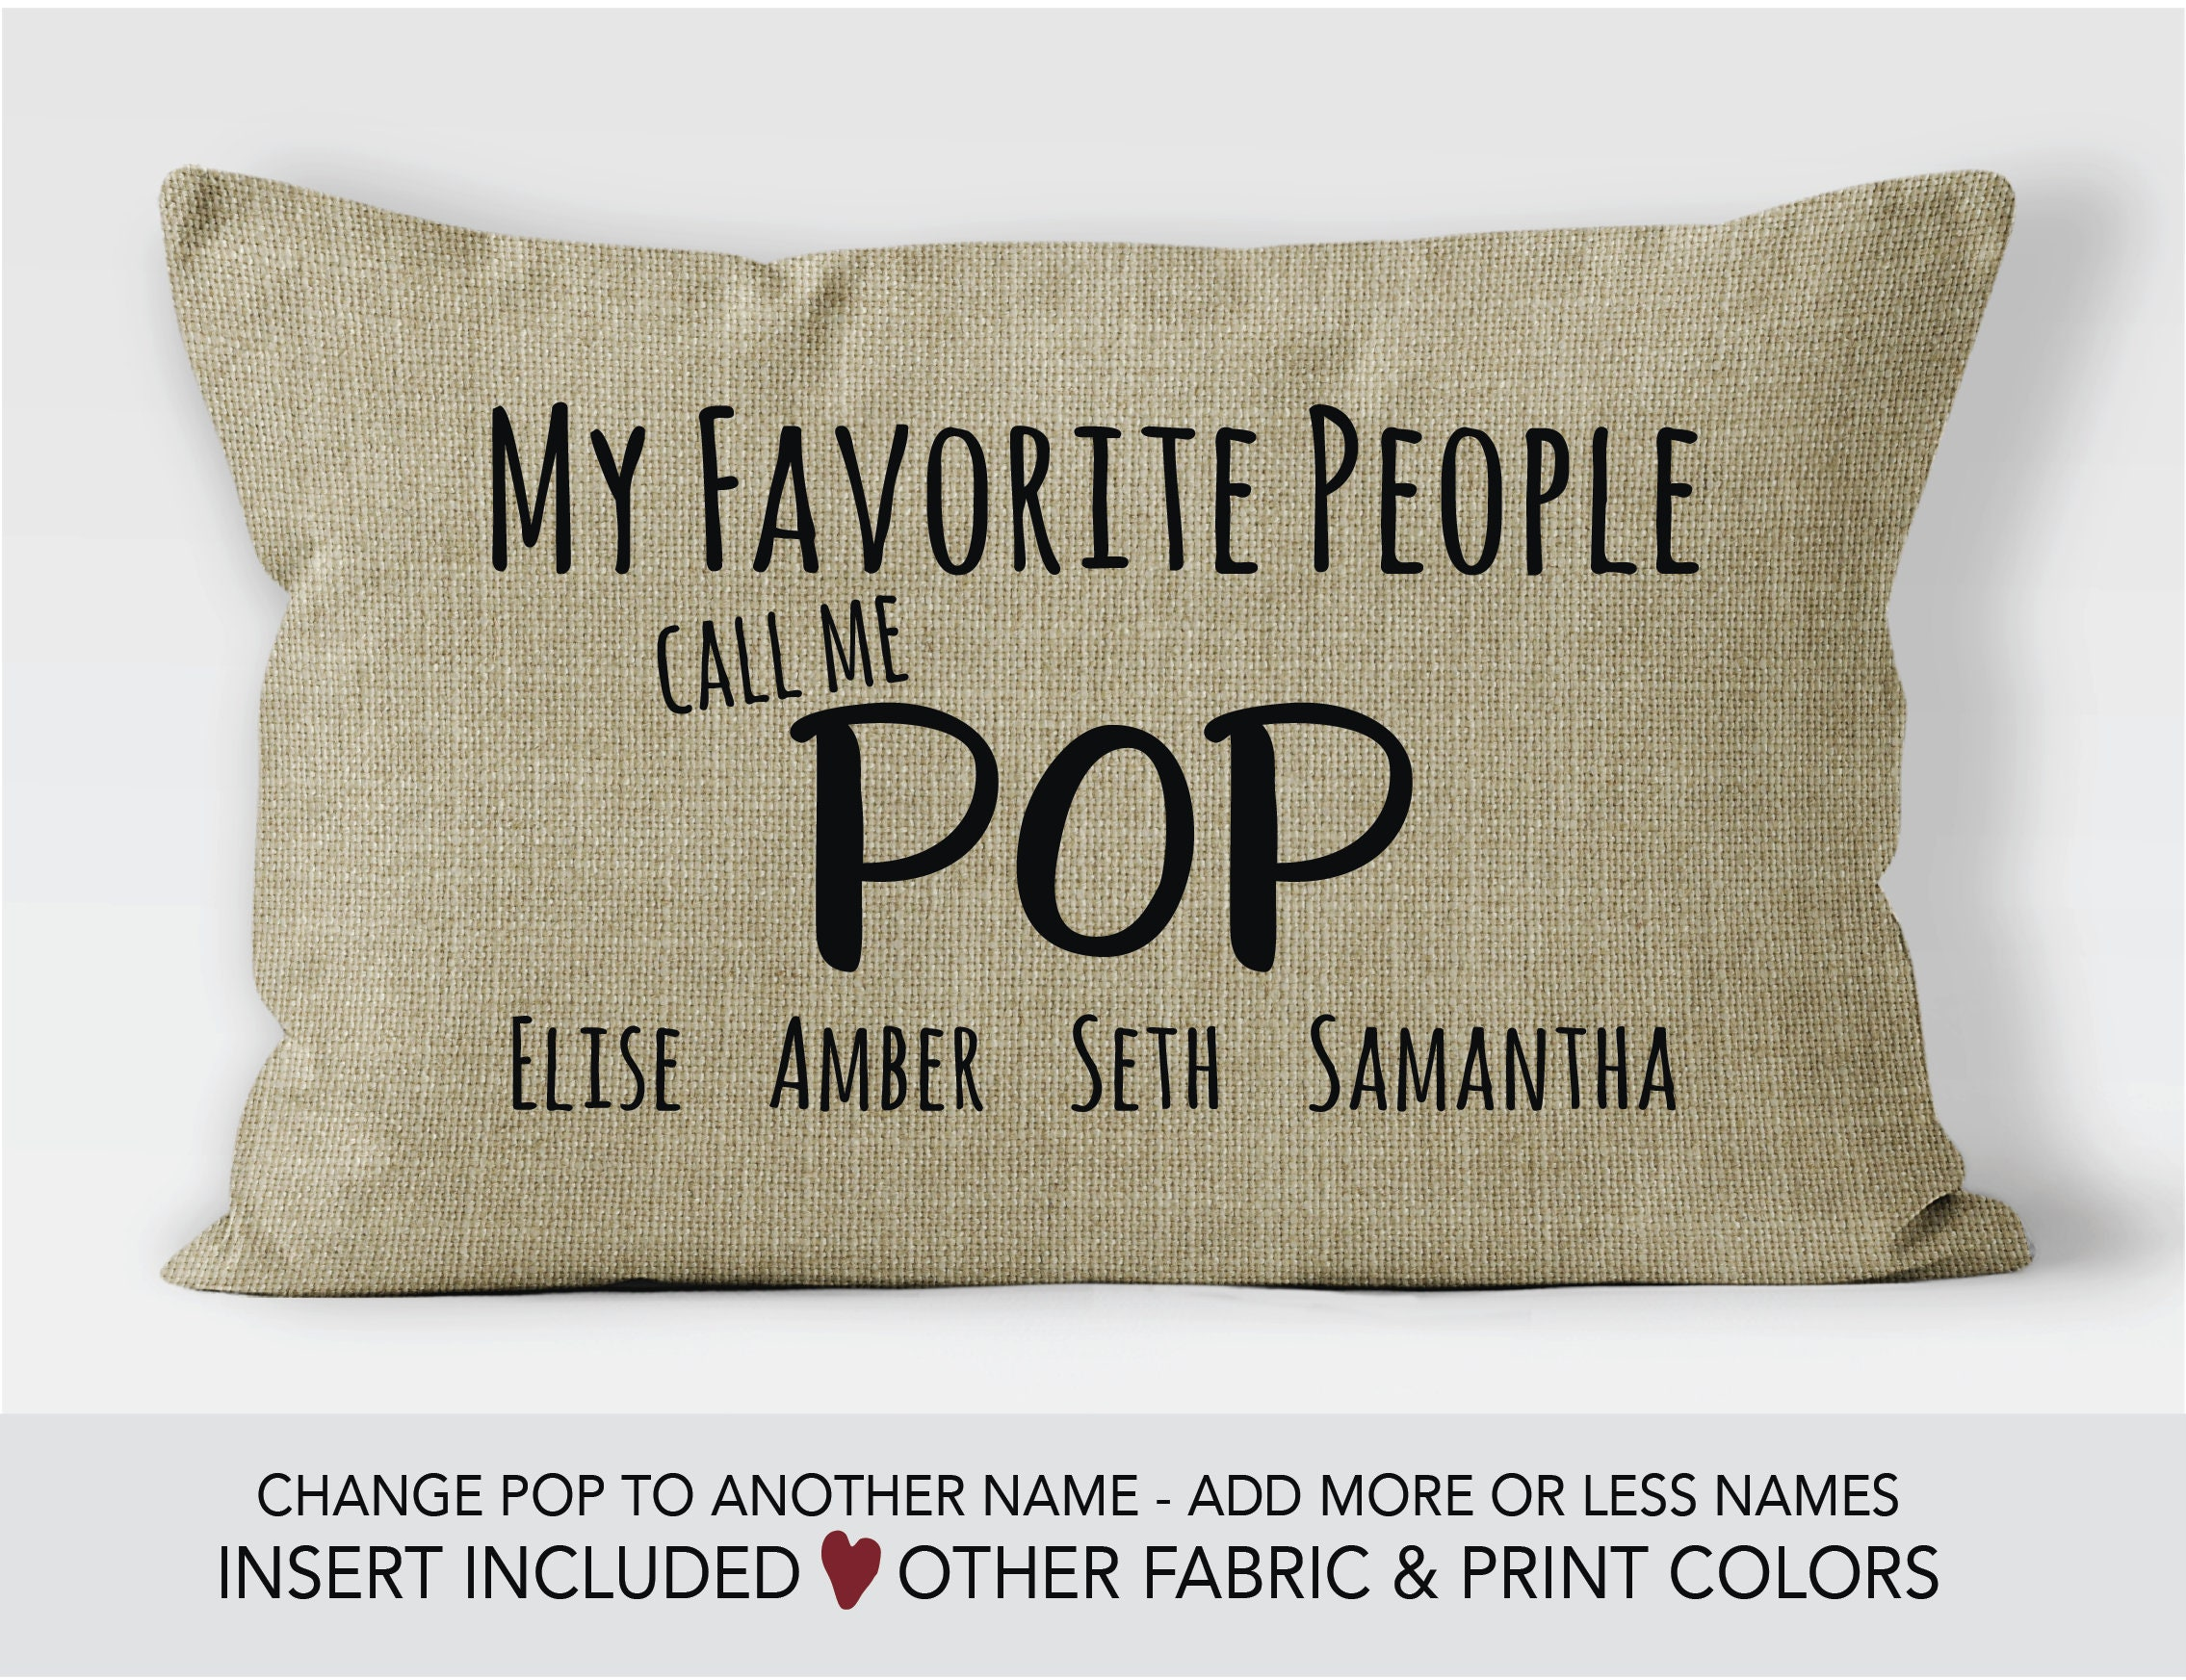 Pop Gift Idea Fathers Day Pillow 60th Birthday Personalized Gifts For My Greatest Blessings Call Me